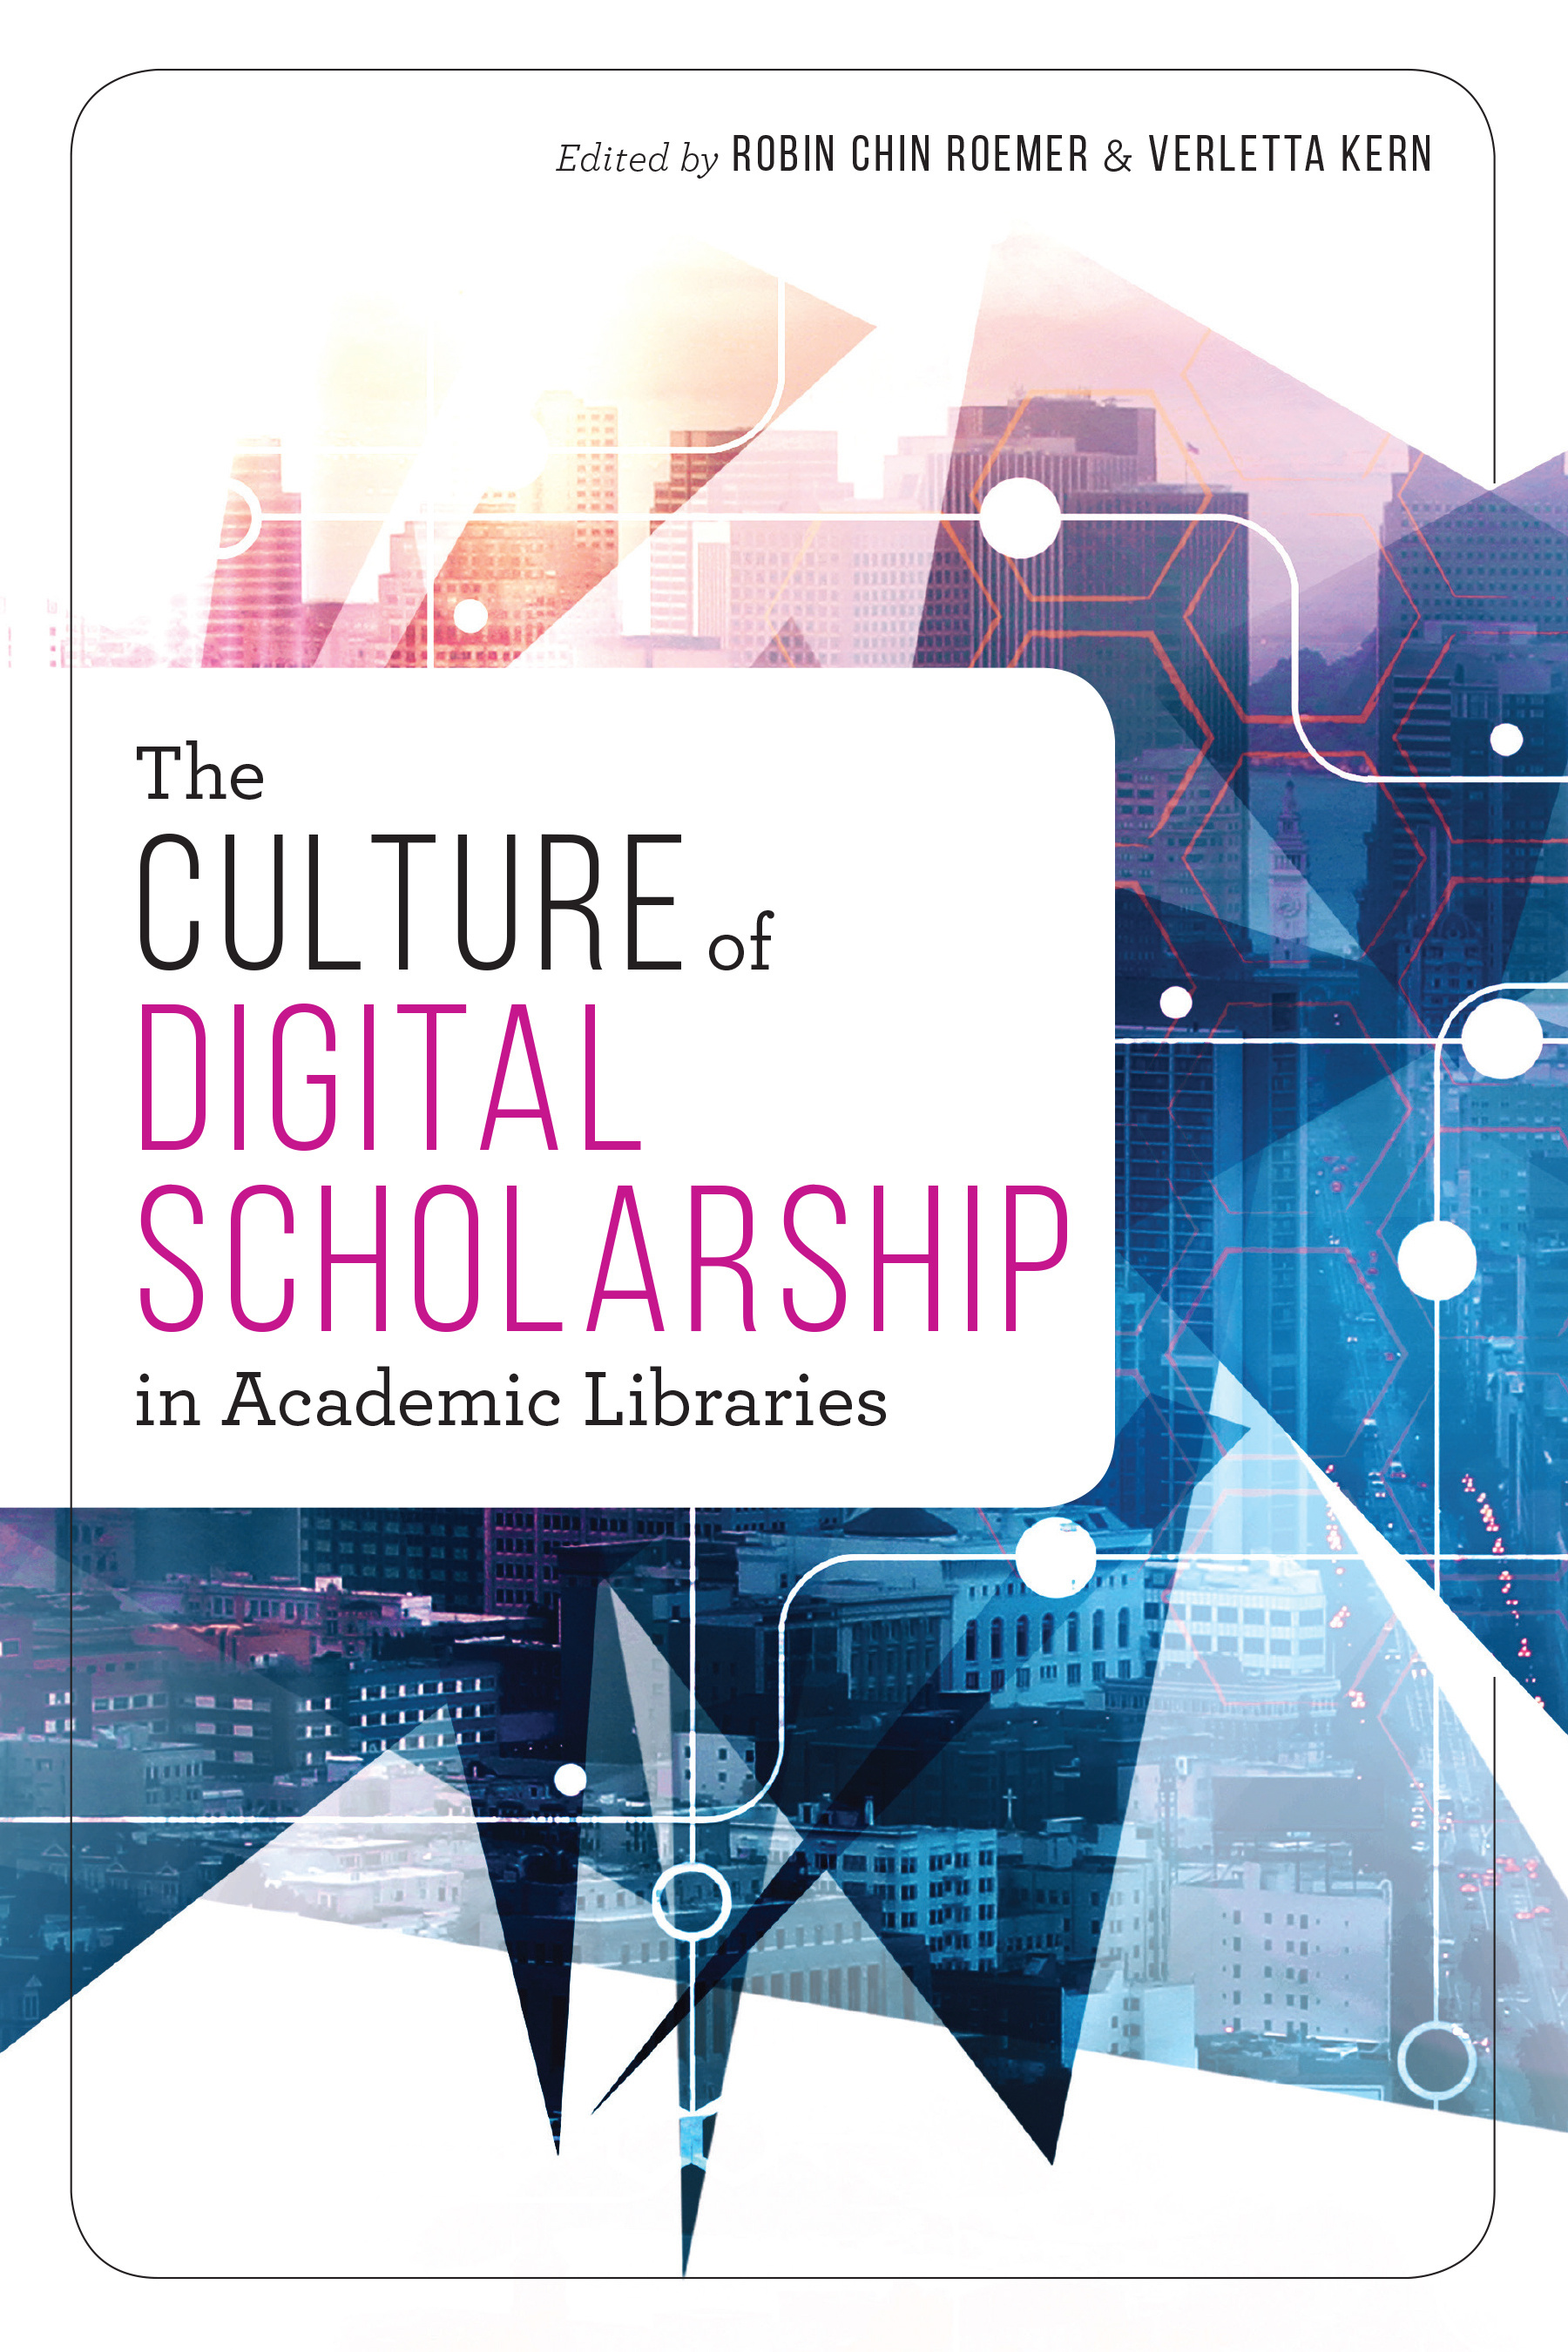 The Culture of Digital Scholarship in Academic Libraries